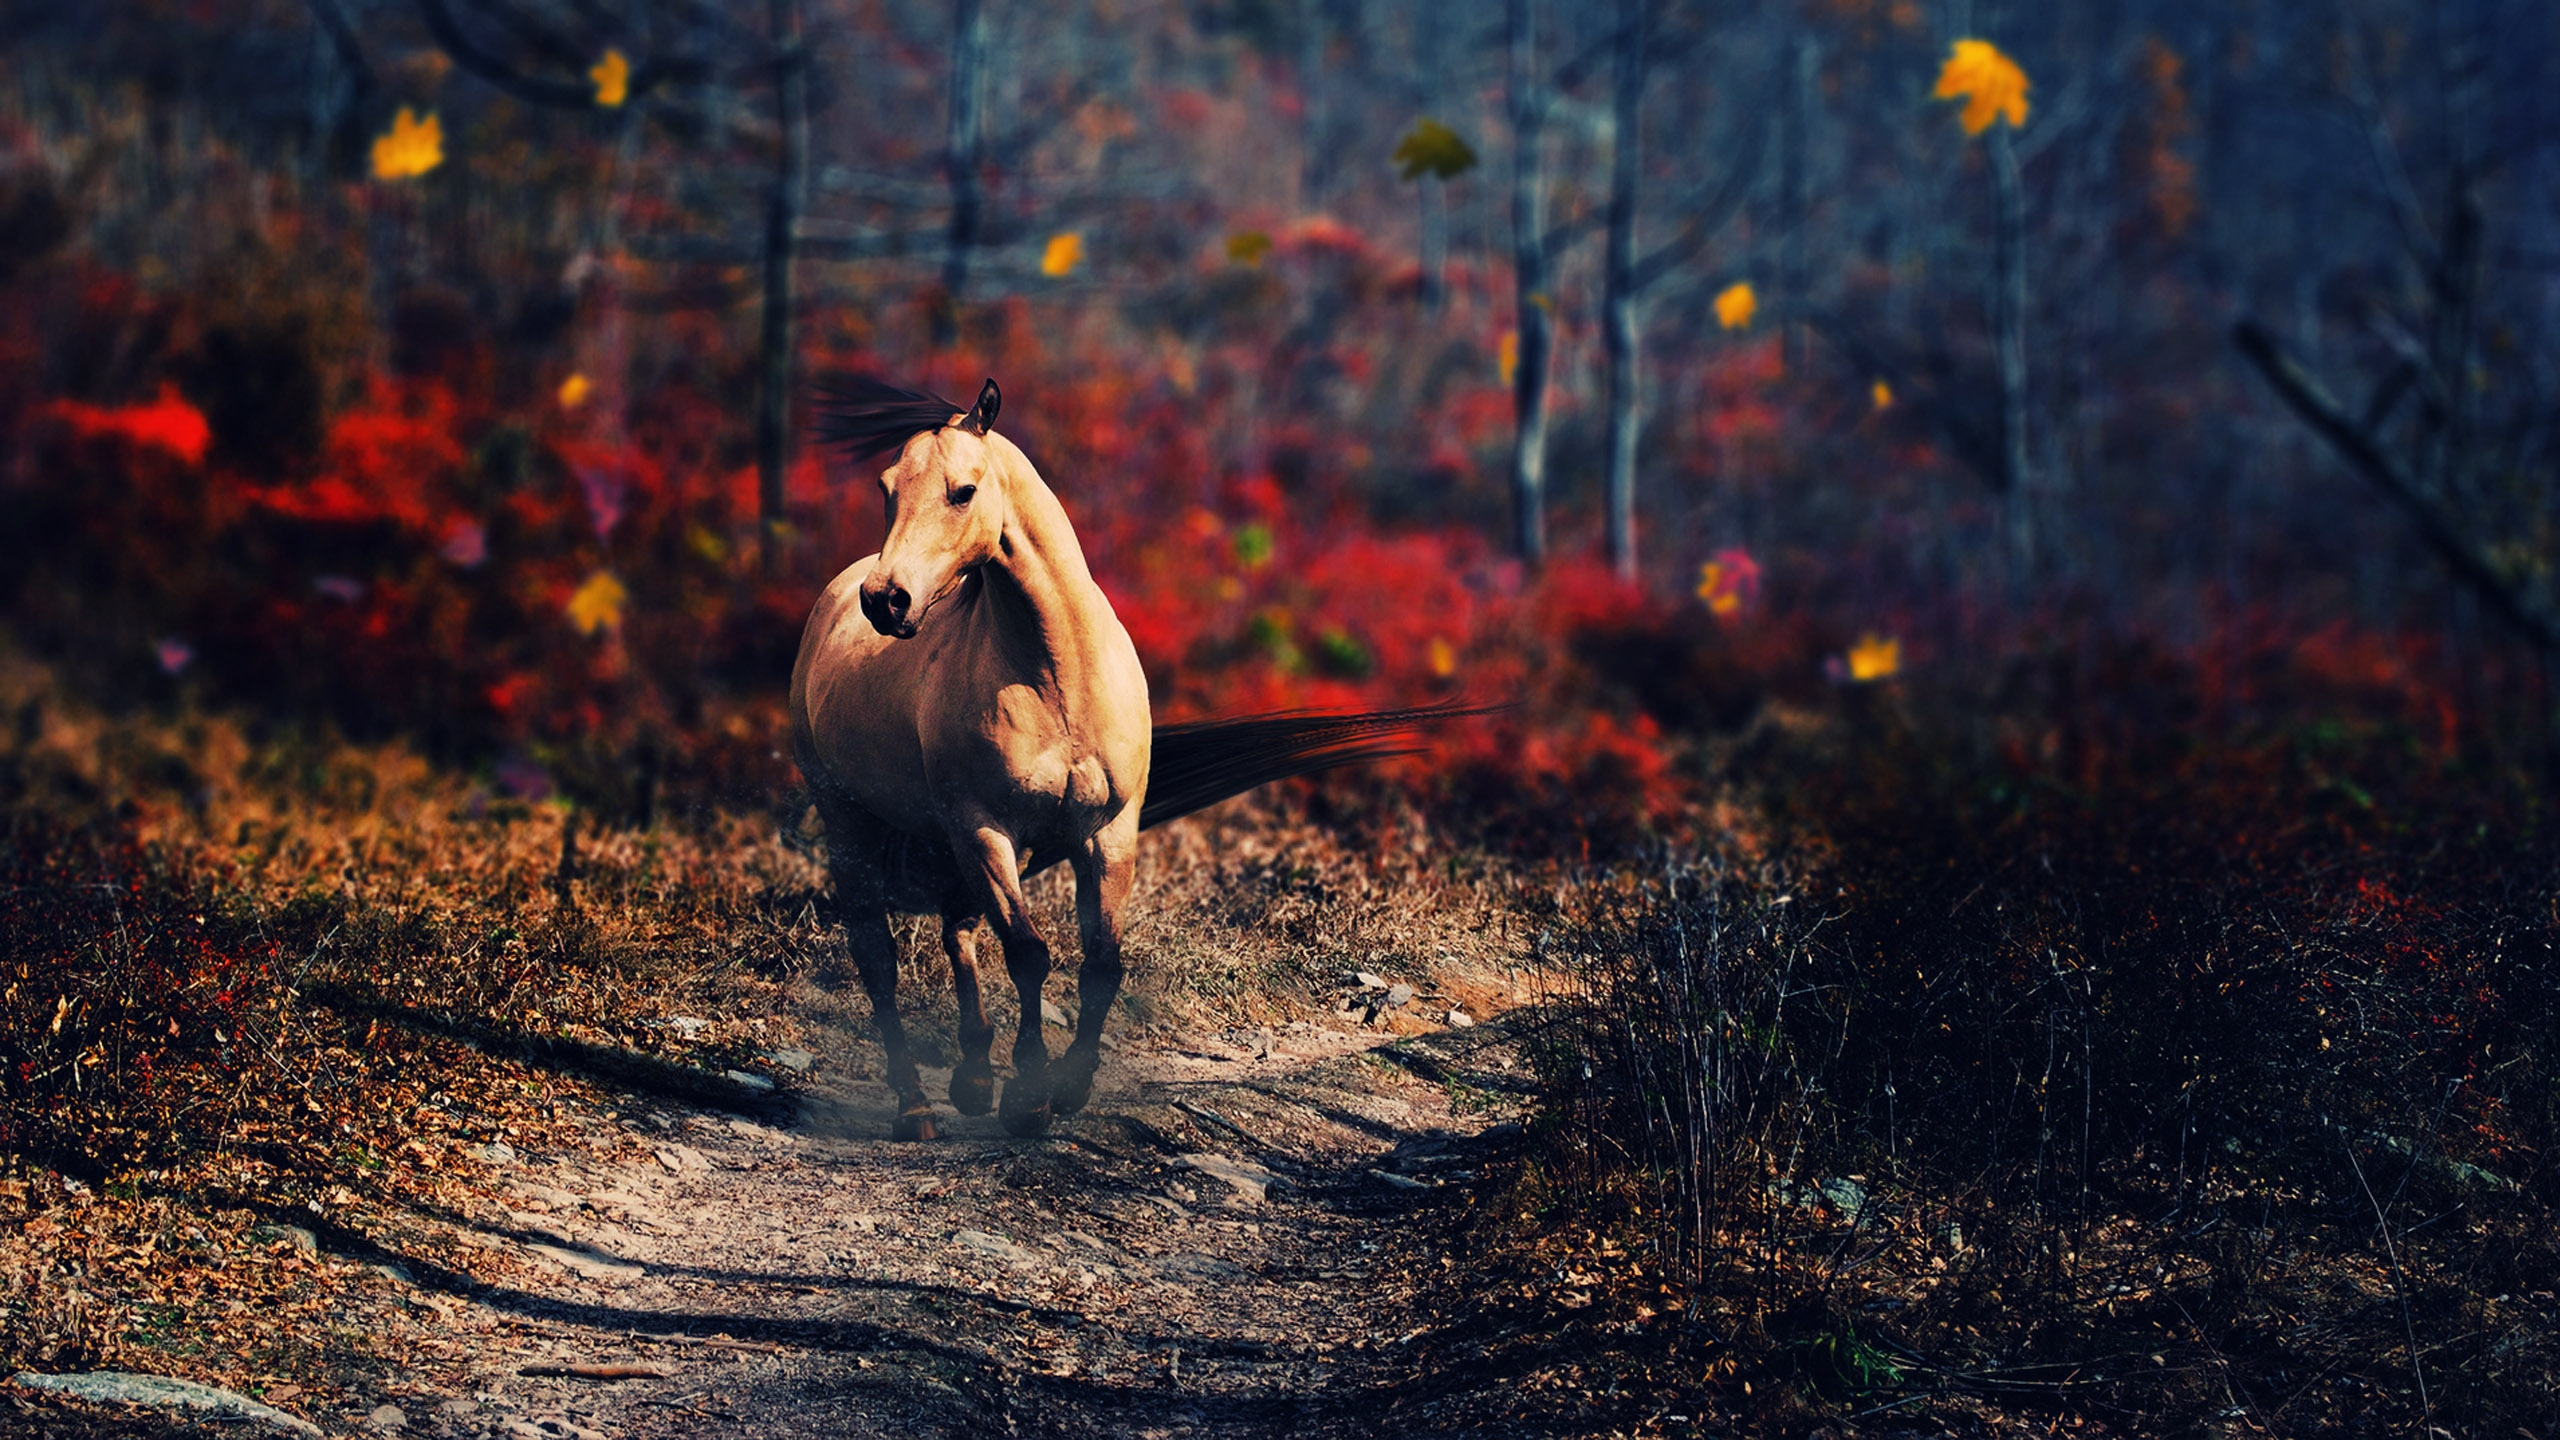 1360x768 Horse New Laptop Hd Hd 4k Wallpapers Images Backgrounds Photos And Pictures